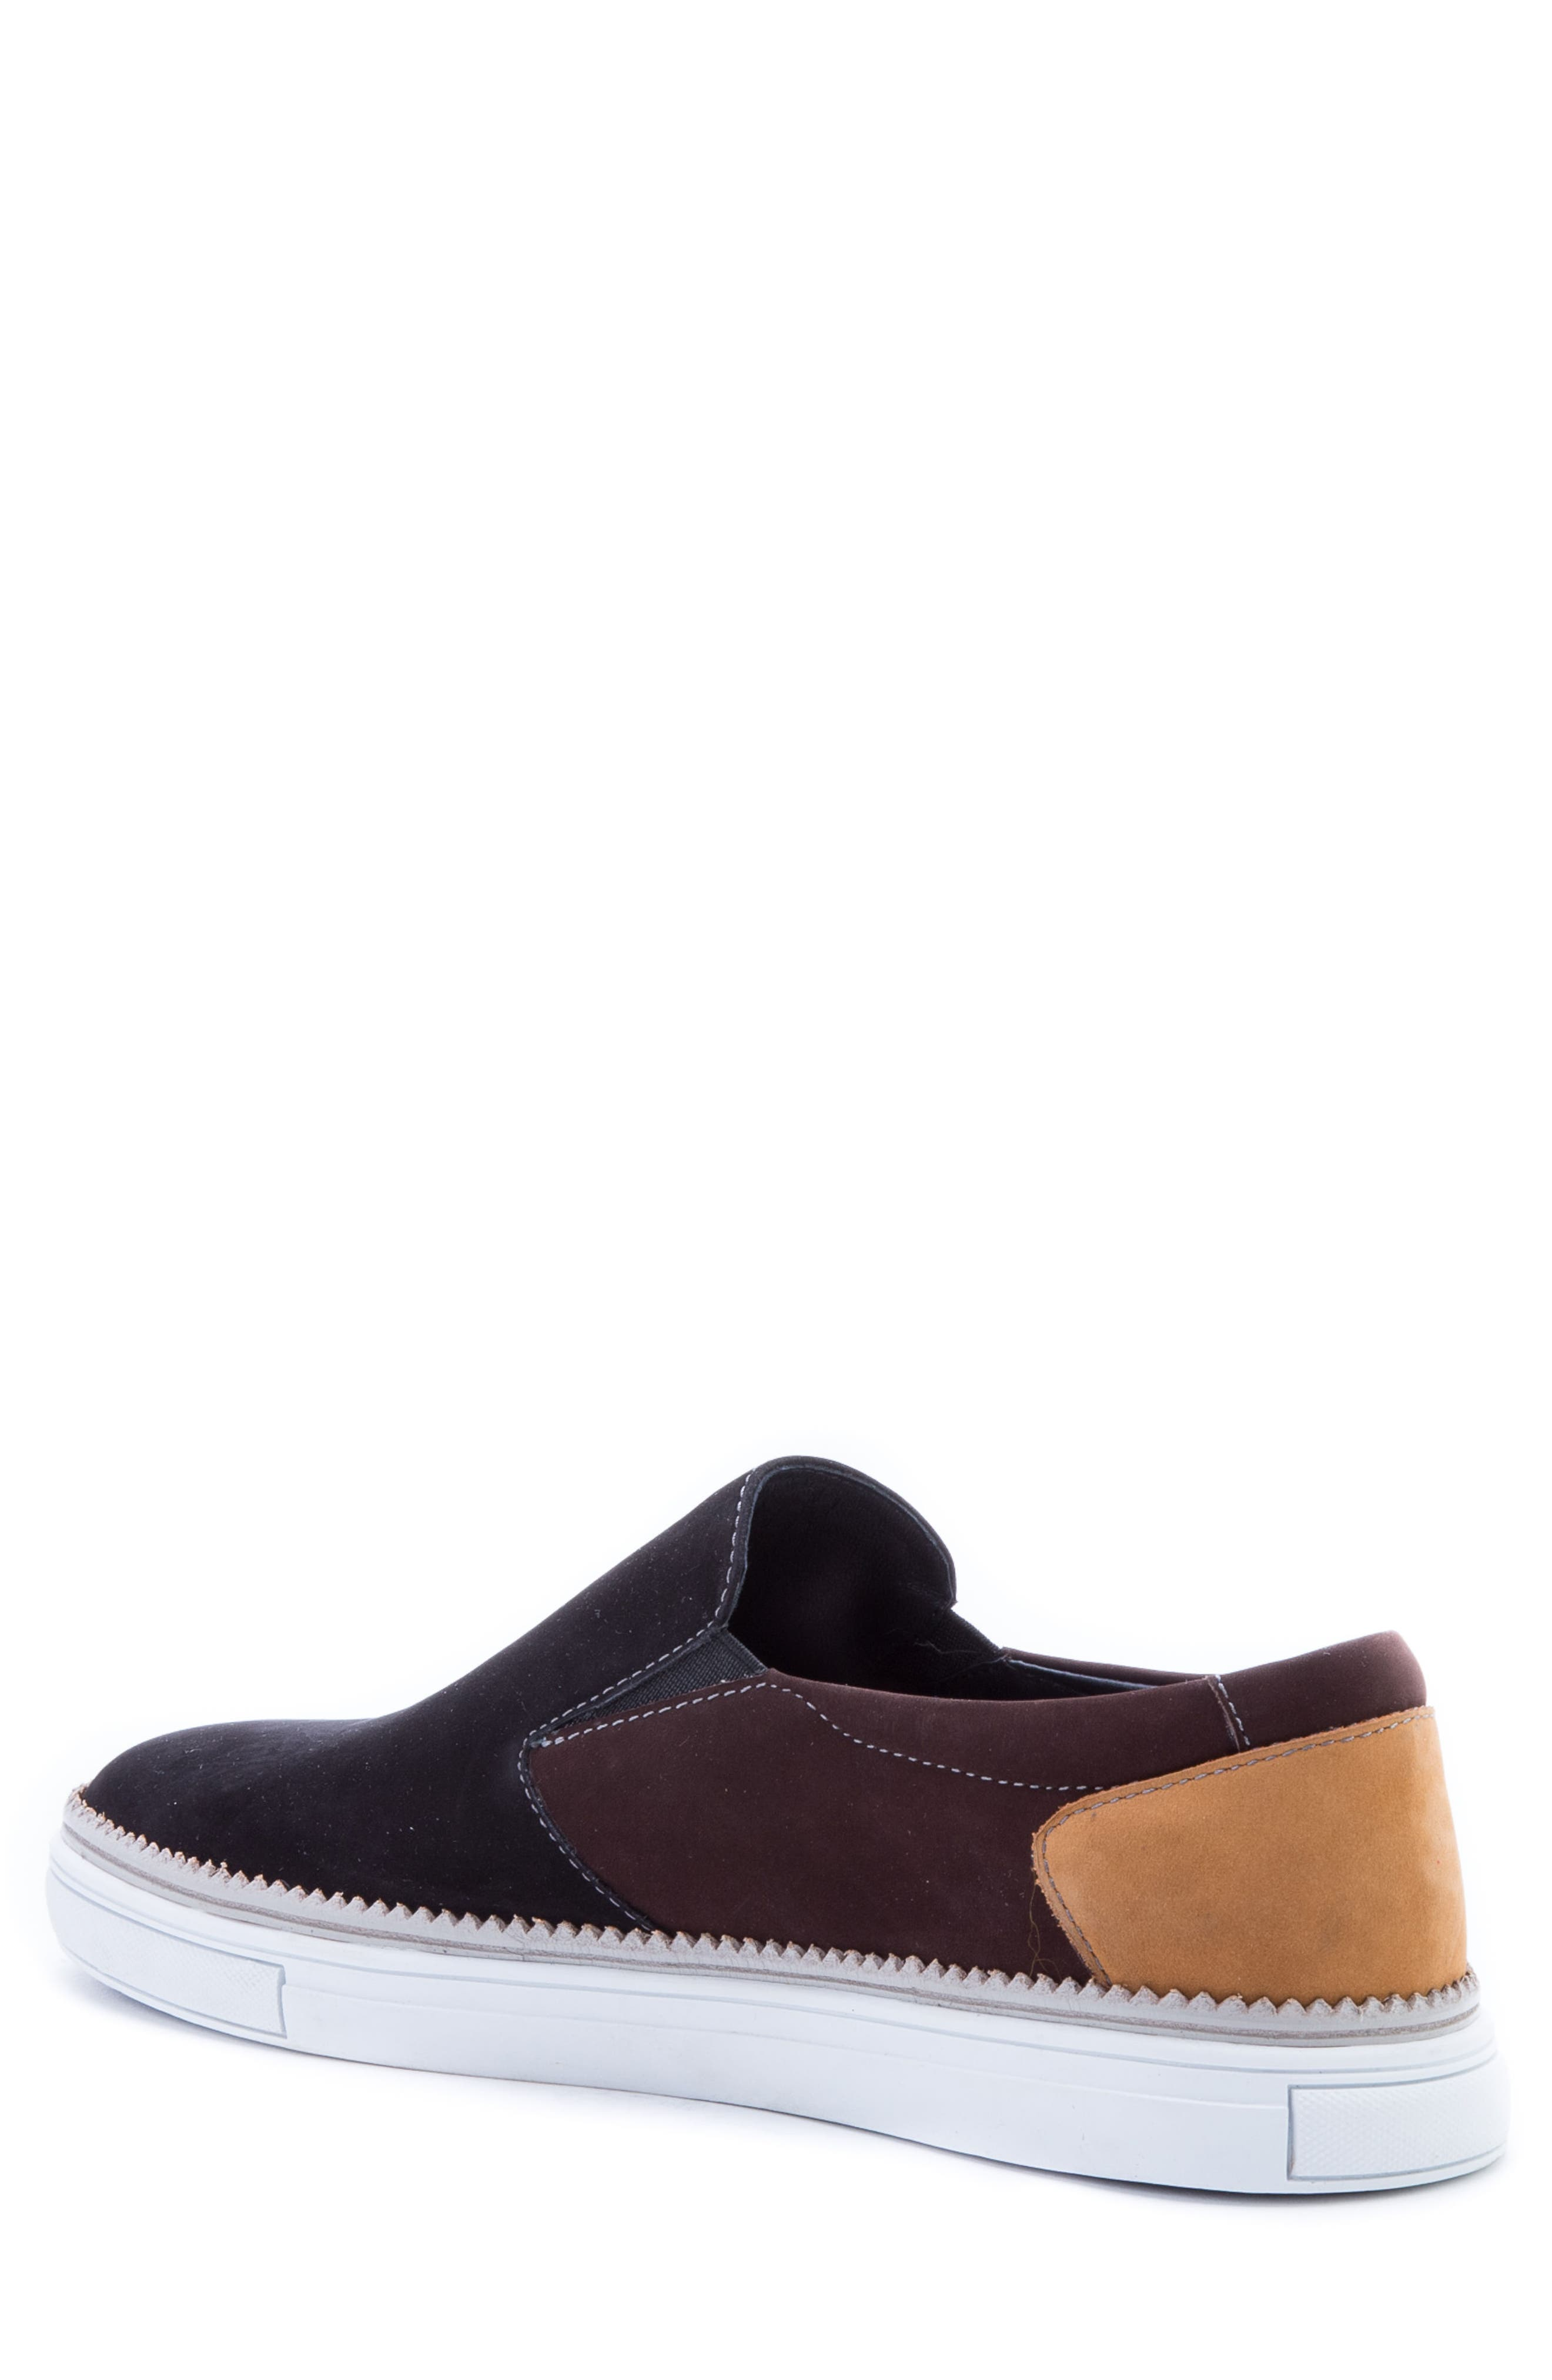 Rivera Colorblocked Slip-On Sneaker,                             Alternate thumbnail 2, color,                             BLACK SUEDE